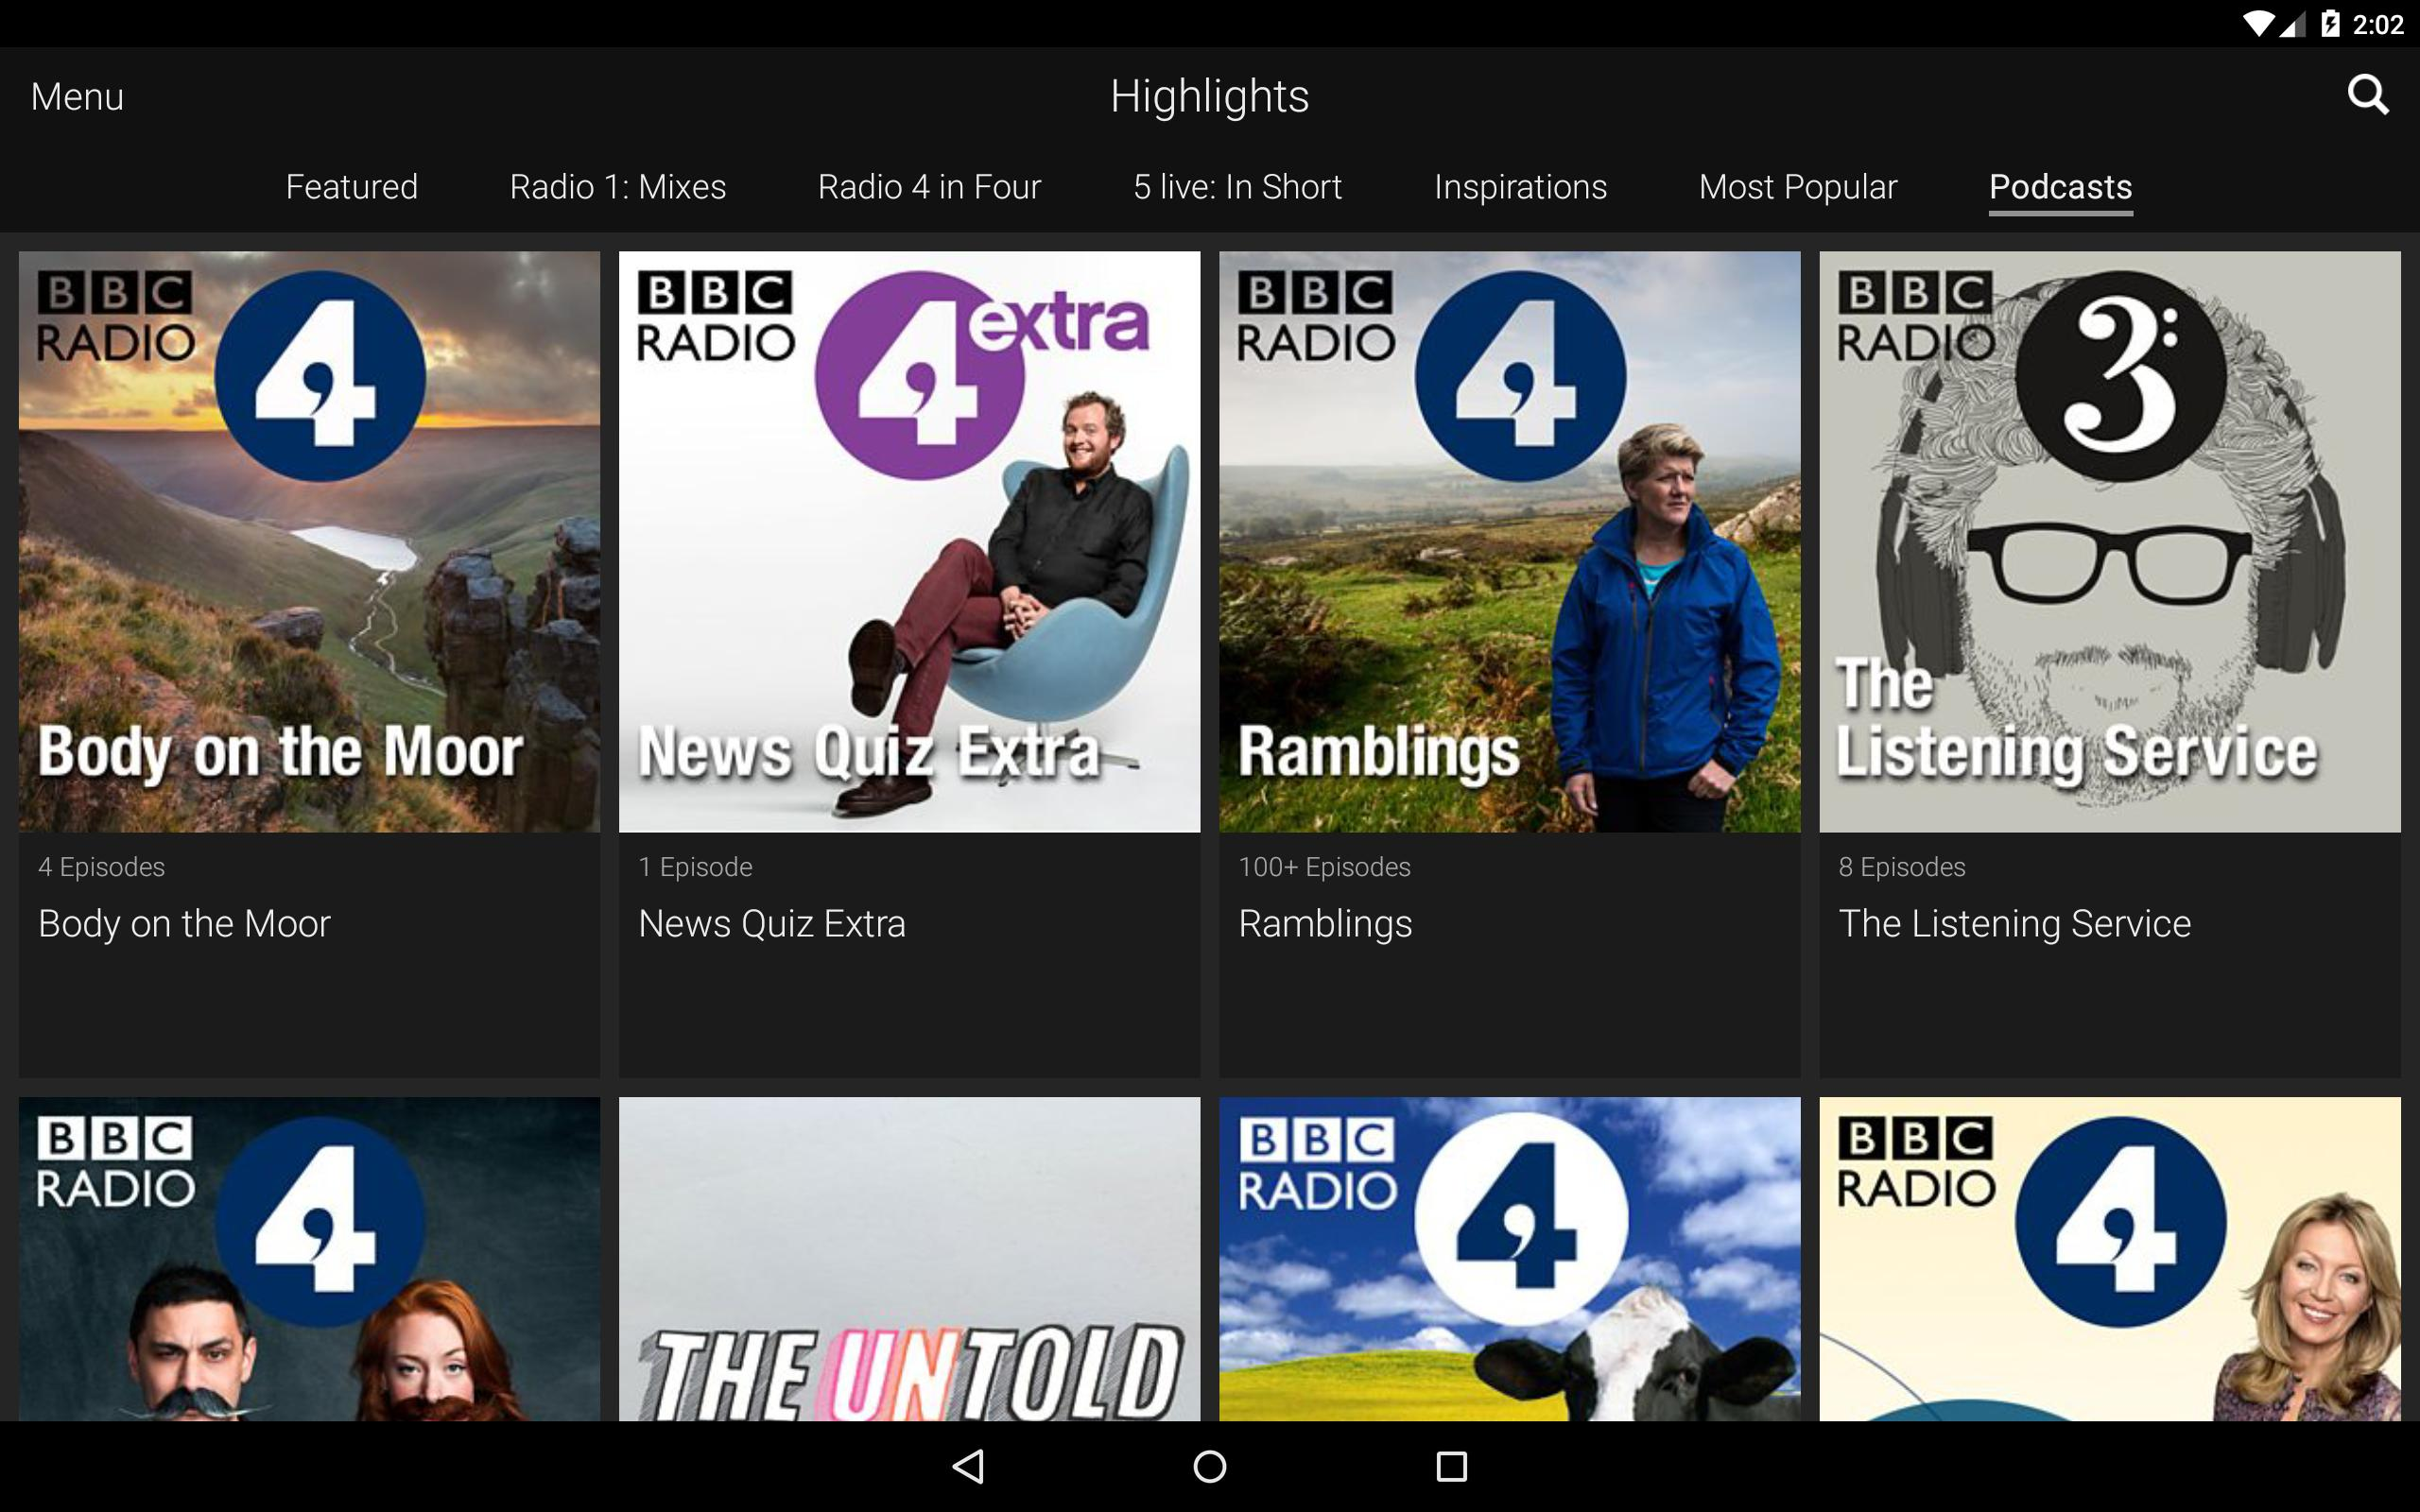 Download From Iplayer To Keep